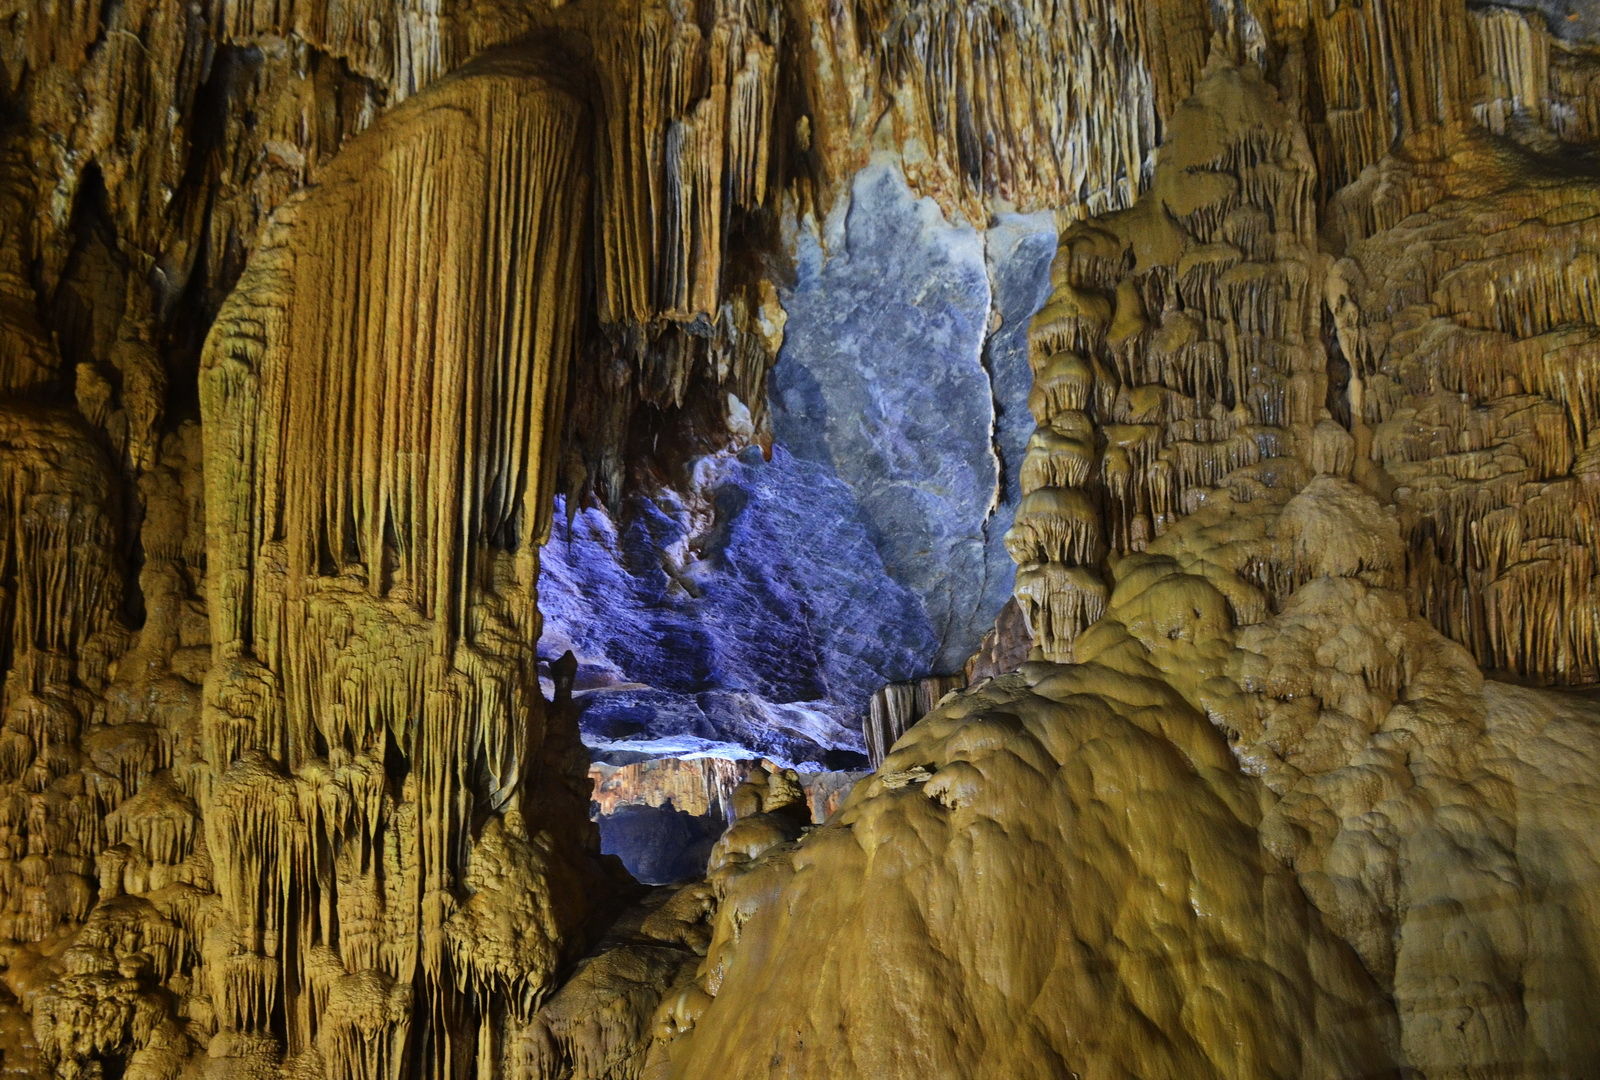 Vietnam. More limestone cave features in the aptly named Paradise Cave